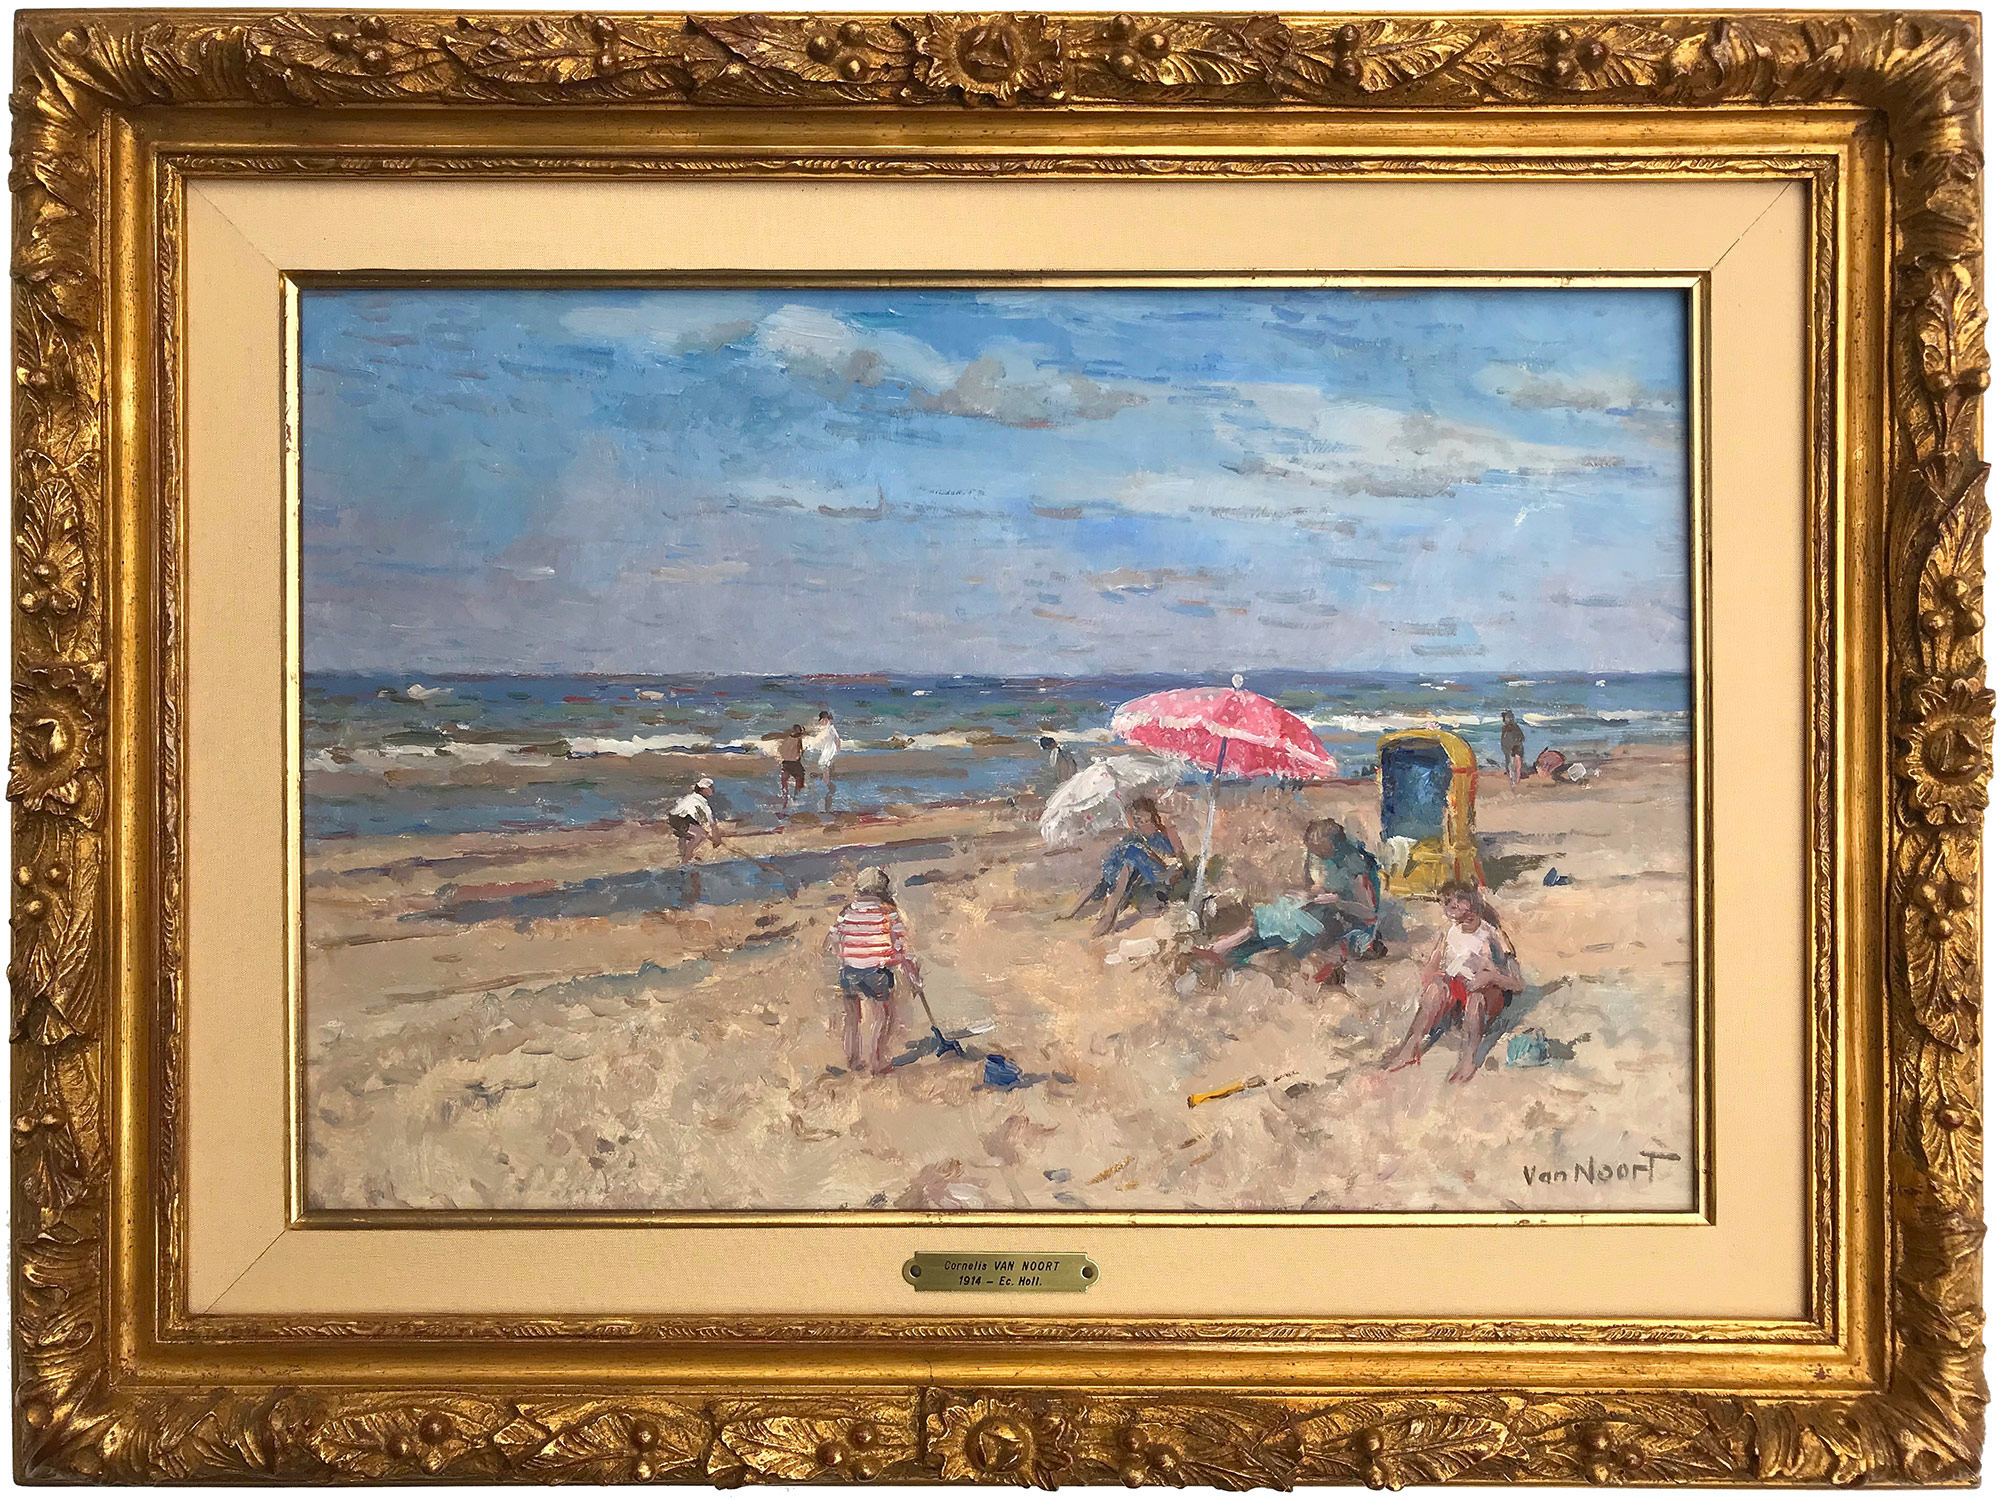 Beach Scene with Figures and Parasol, Mid-20th Century